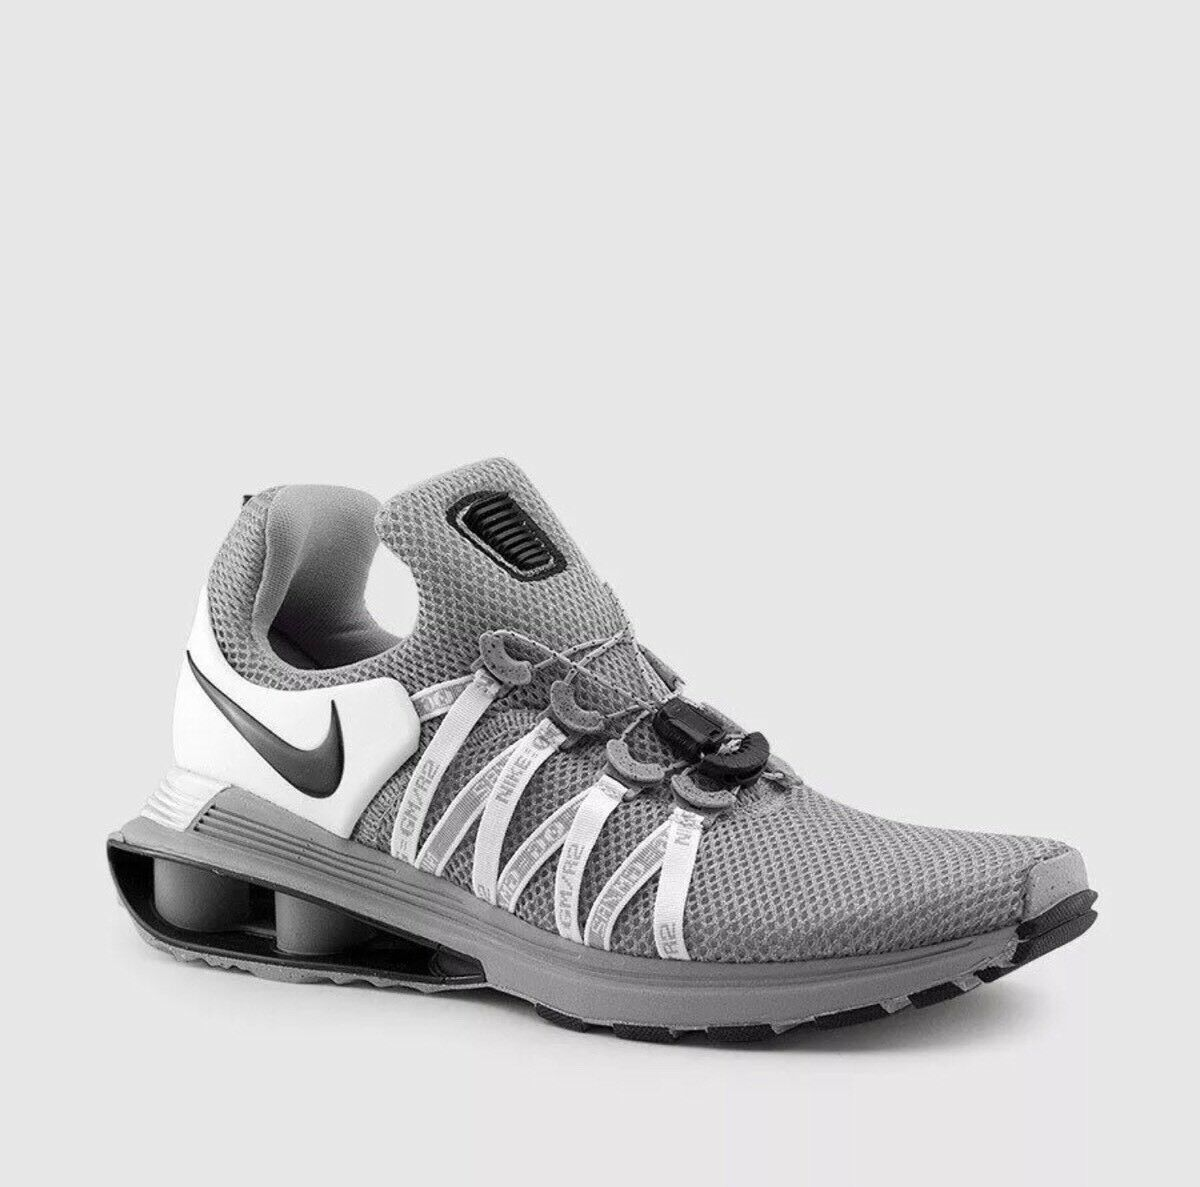 New shoes for men and women, limited time discount NEW Nike Shox Gravity Running Shoe Wolf Grey/Black White AR1999-010 Men's Sz 10